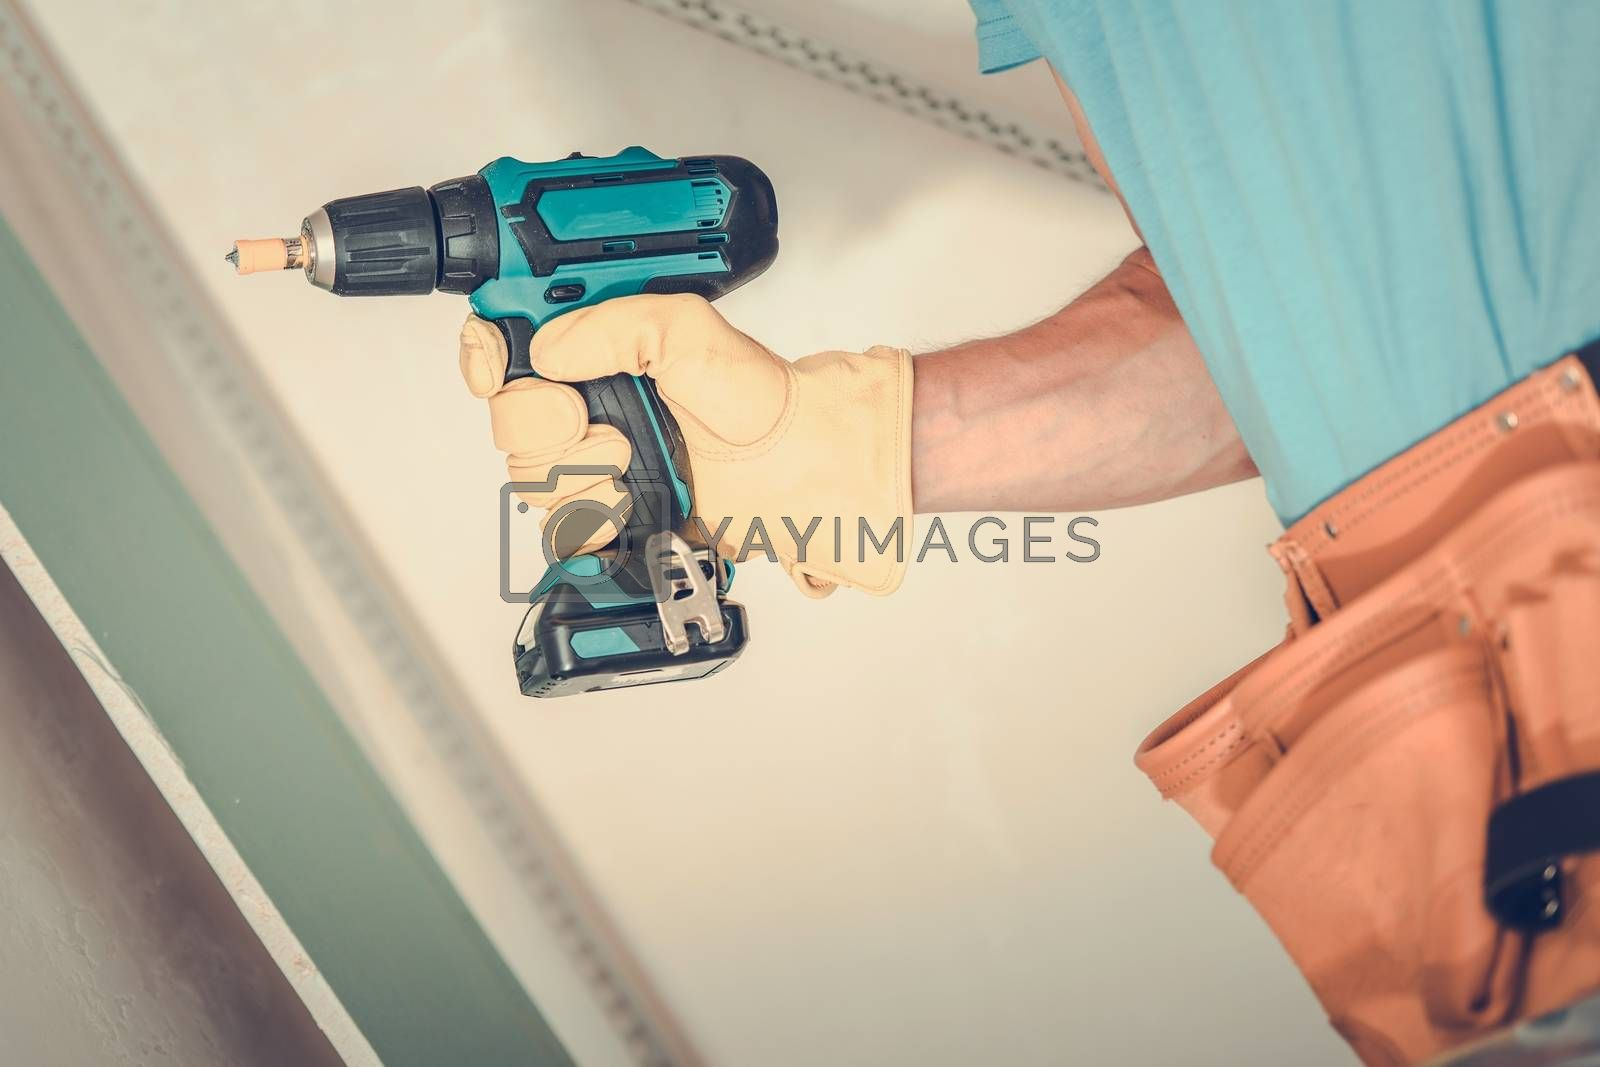 Drywall Building. Contractor with Drill Driver Closeup Photo. Construction Theme.